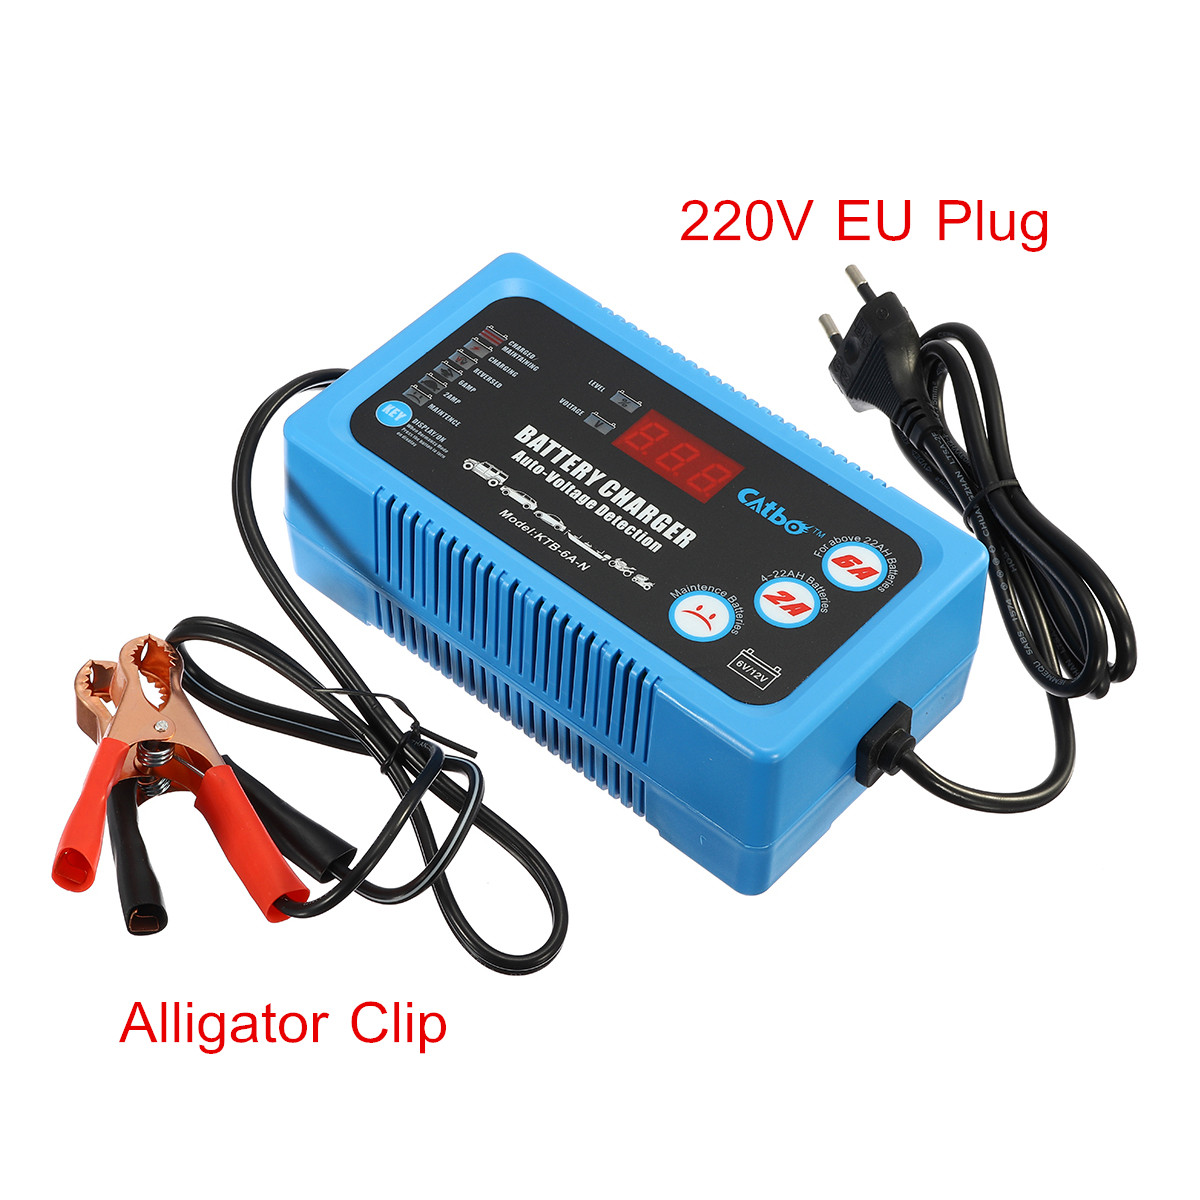 pulse repair type automatic intelligent digital display heat radiator control 220v 6v 12v 120ah car battery charger energy save 220V 6V/12V 120AH Car Battery Charger Automatic Intelligent Pulse Repair Type Digital Display Heat Radiator Control Energy Save